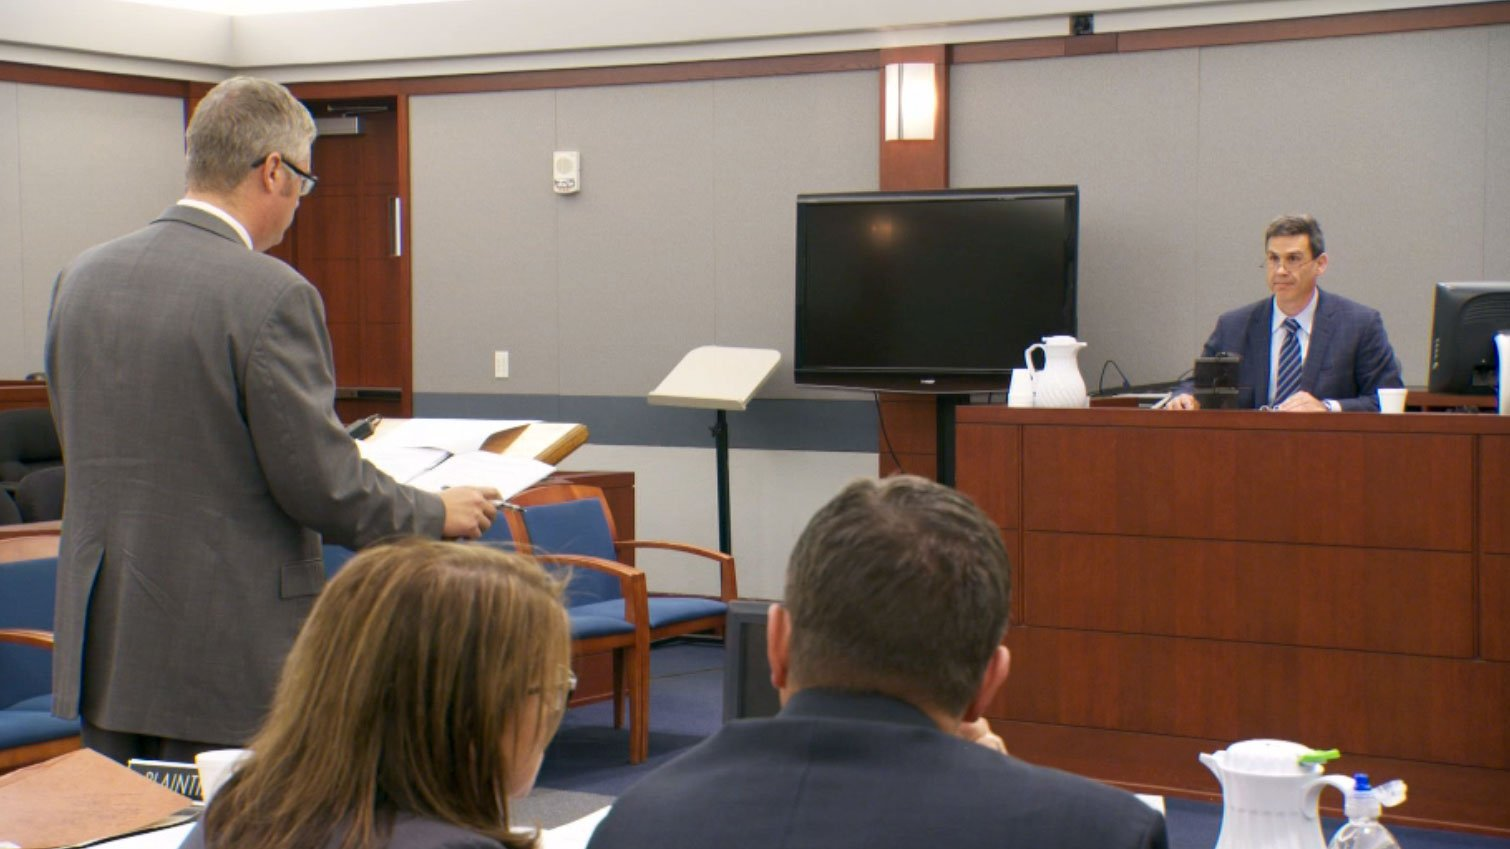 An anesthesiologist testifies during a hearing for Scott Dozier's execution on Nov. 3, 2017. (Jason Westerhaus/FOX5)